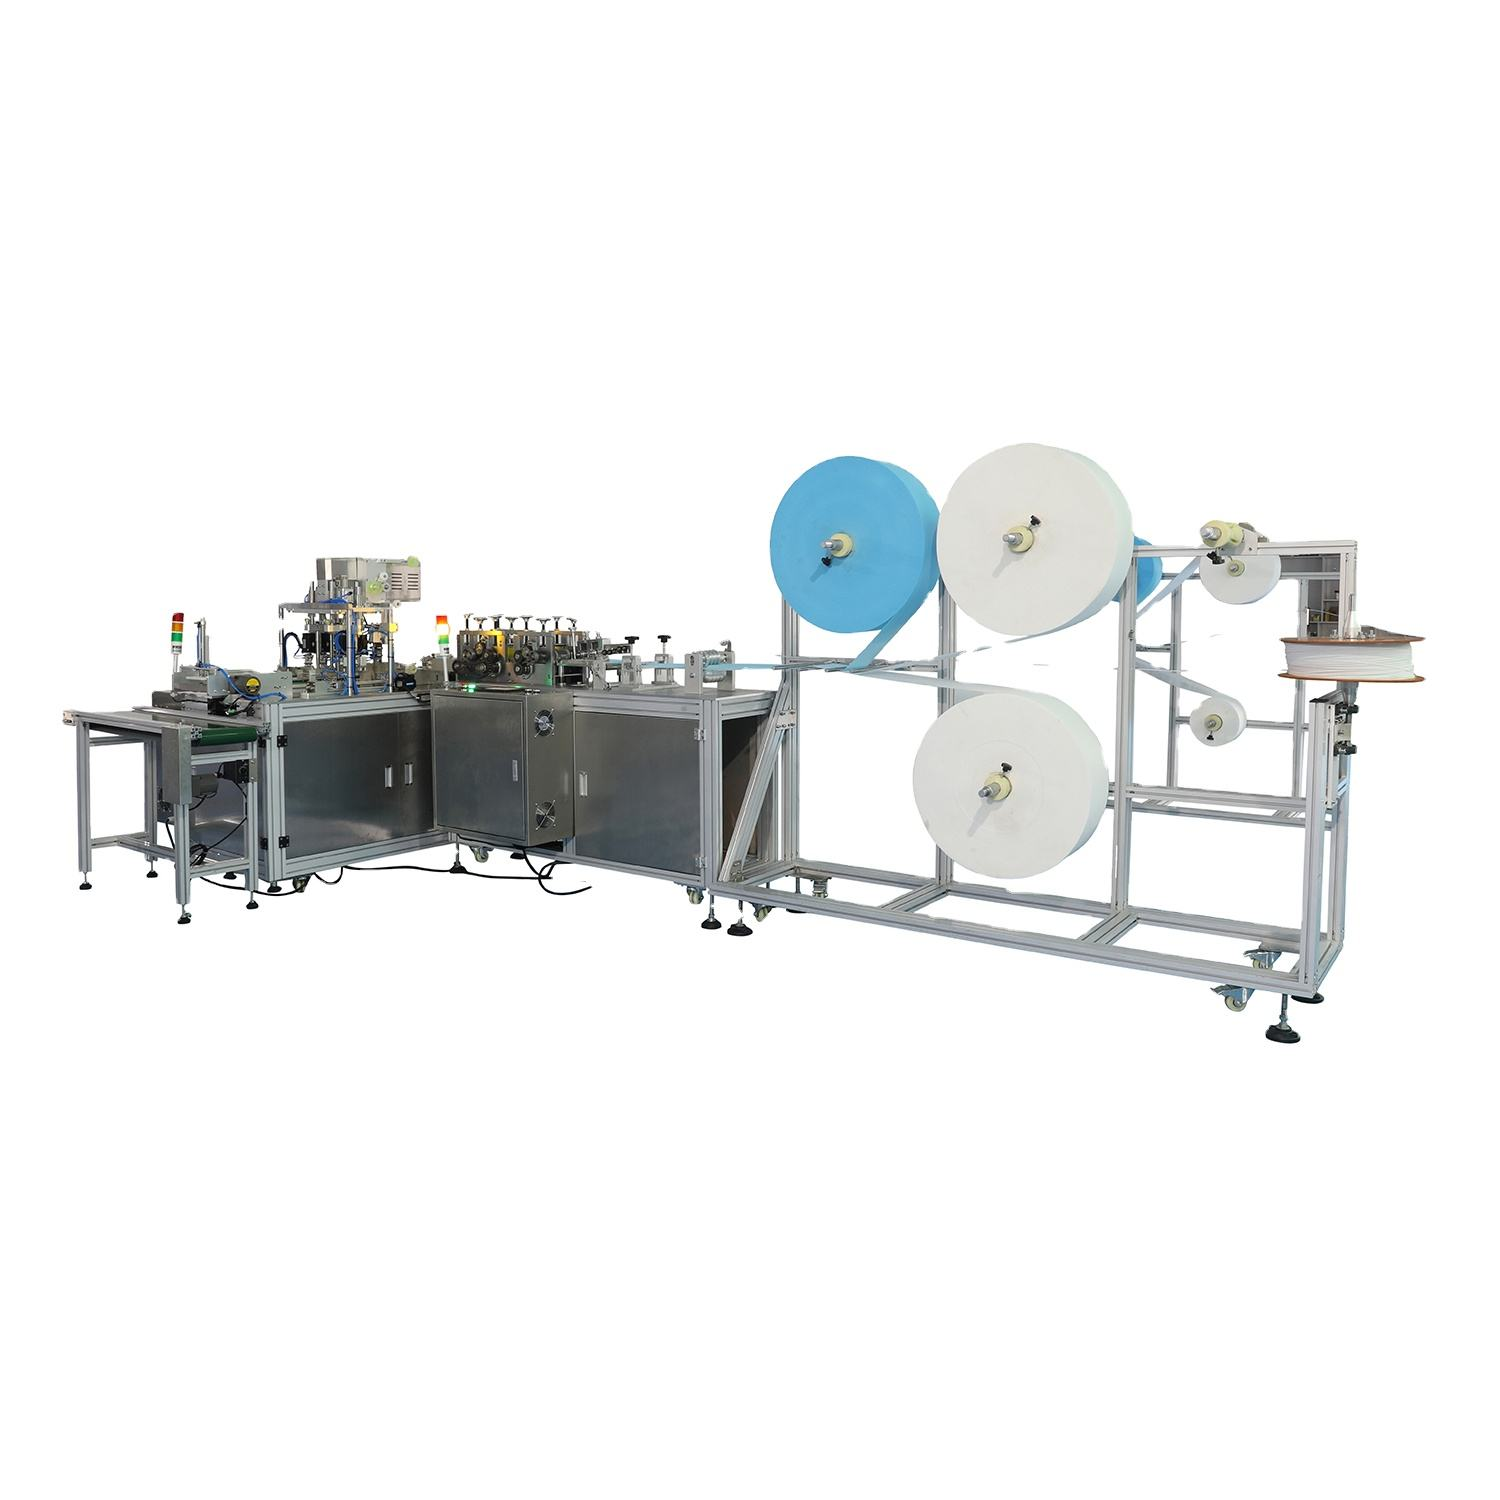 Factory Making Machine Mask Automatic Disposable Mask Production Machine Surgical Dust Face Mask Making Machine